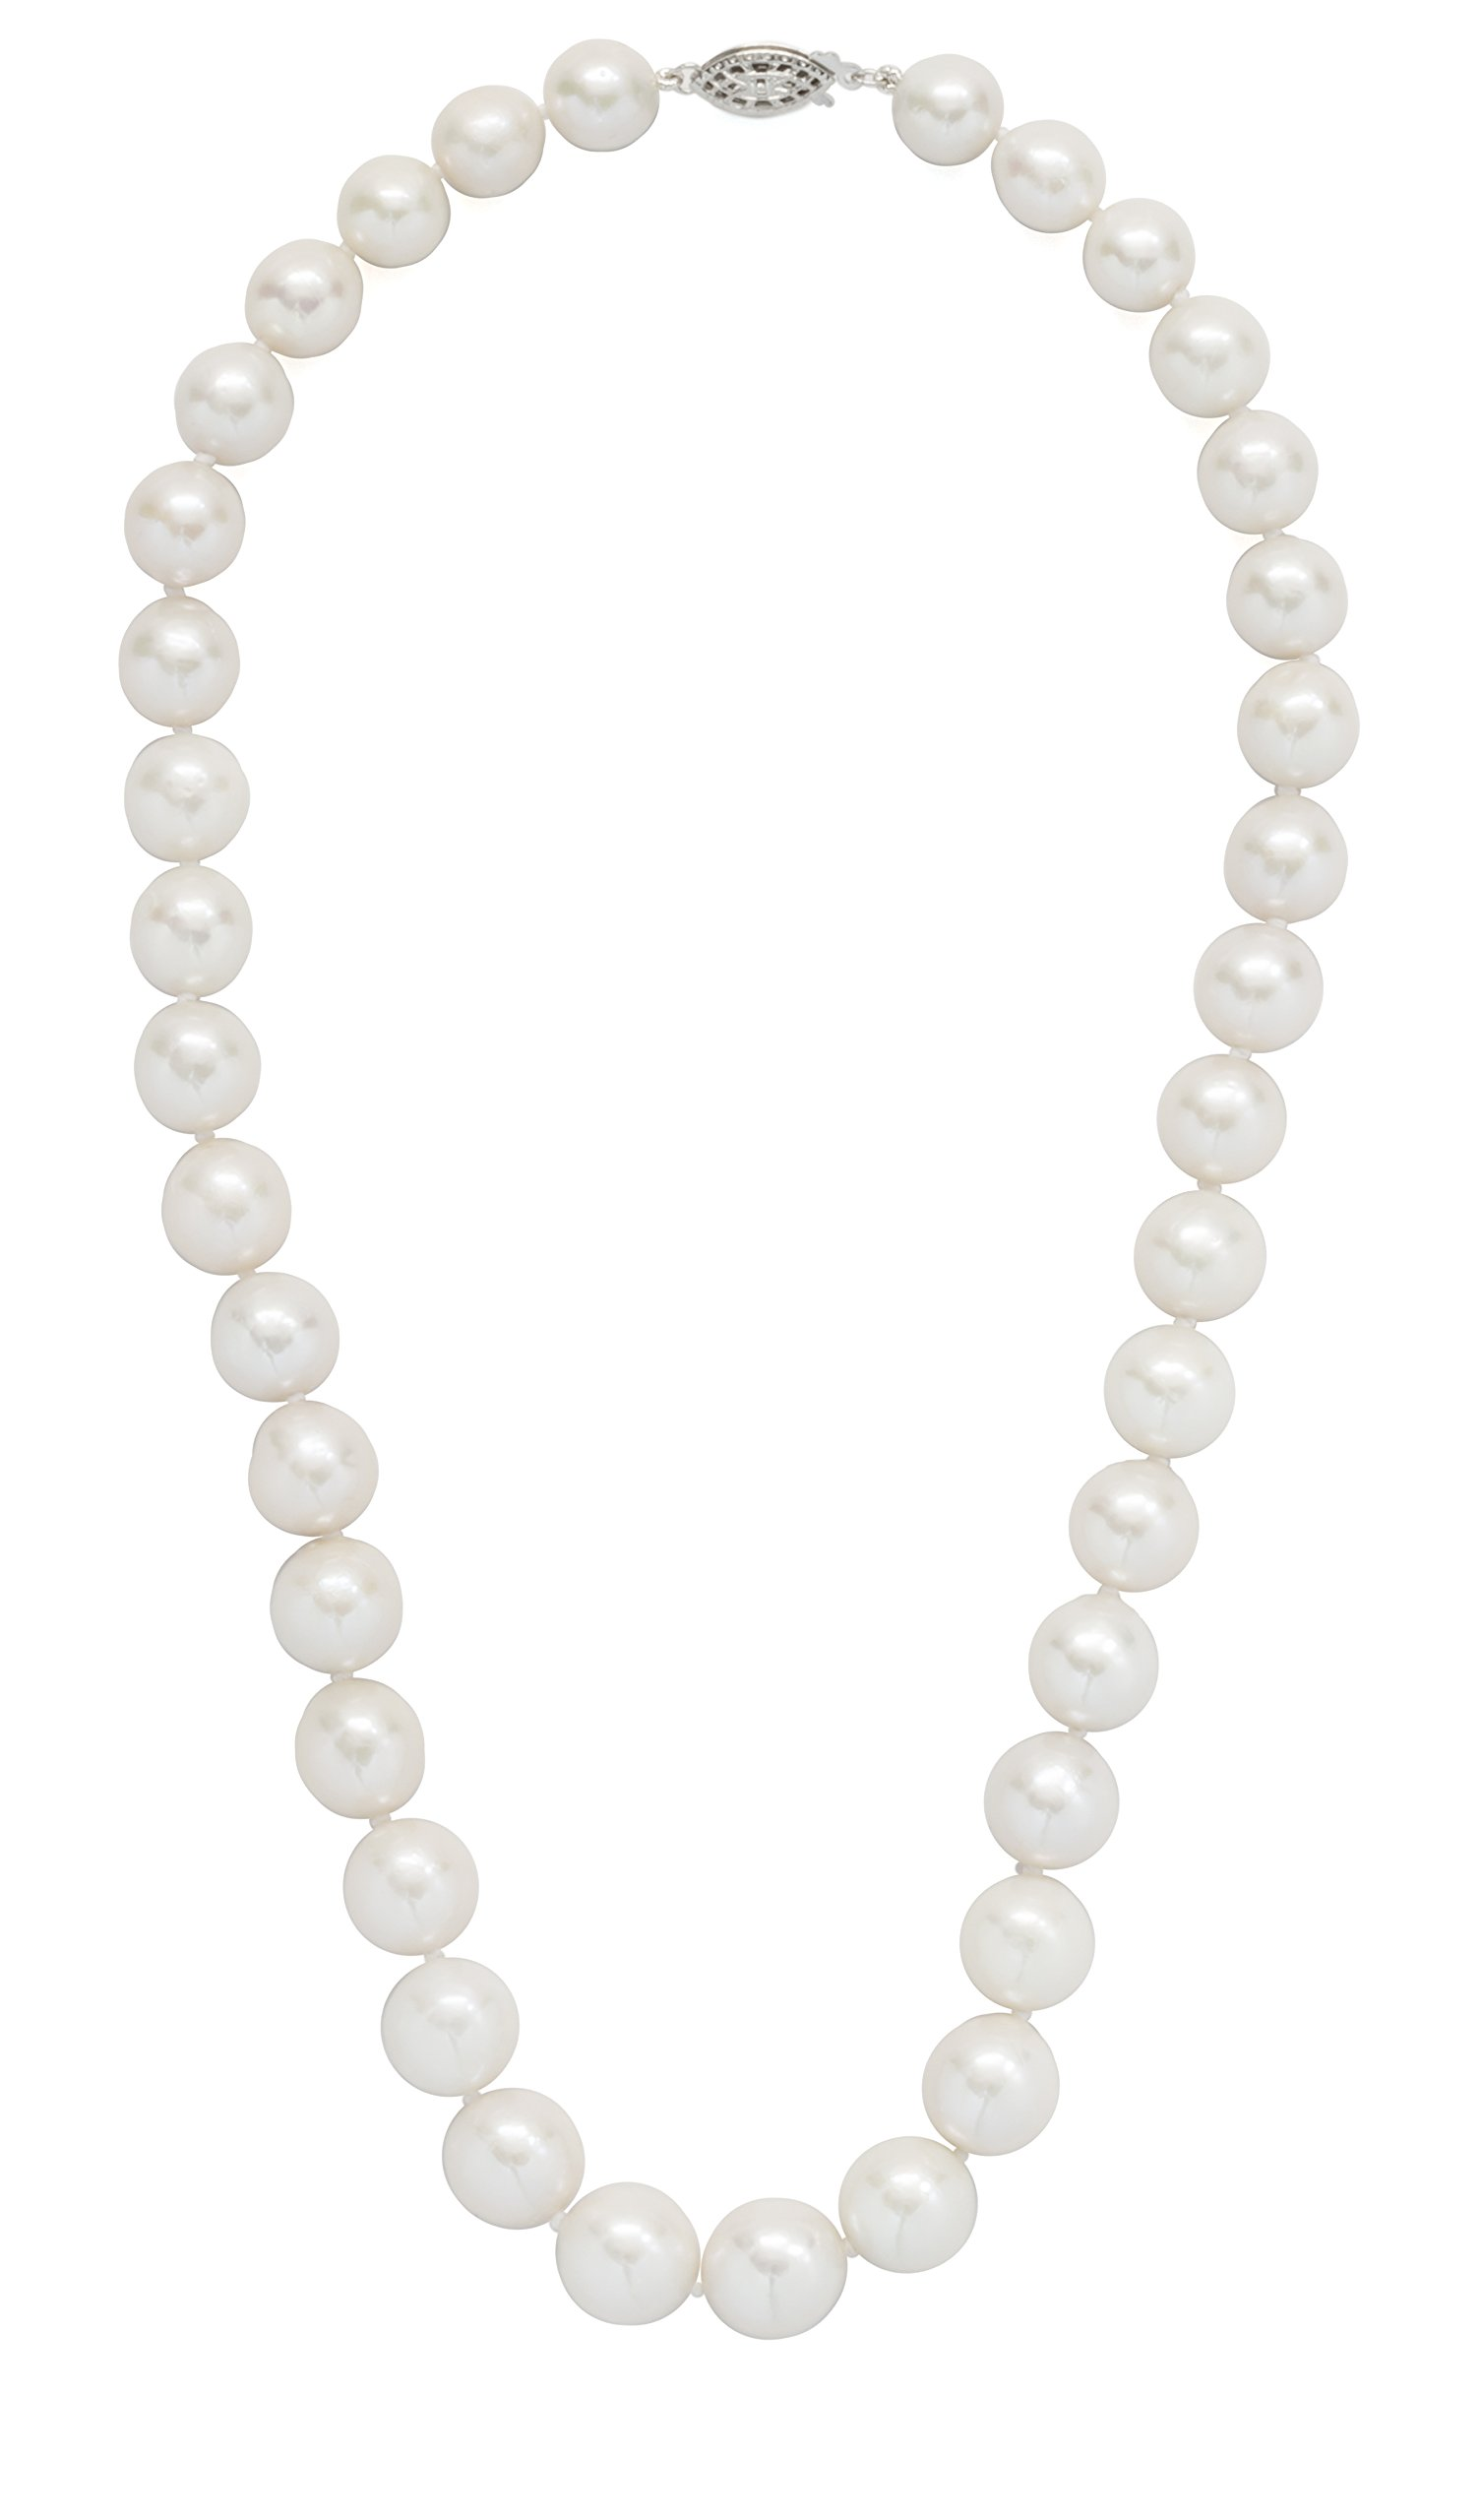 ISAAC WESTMAN Graduated Freshwater Cultured Pearl Strand Necklace | 9-11mm | 925 Sterling Silver Clasp